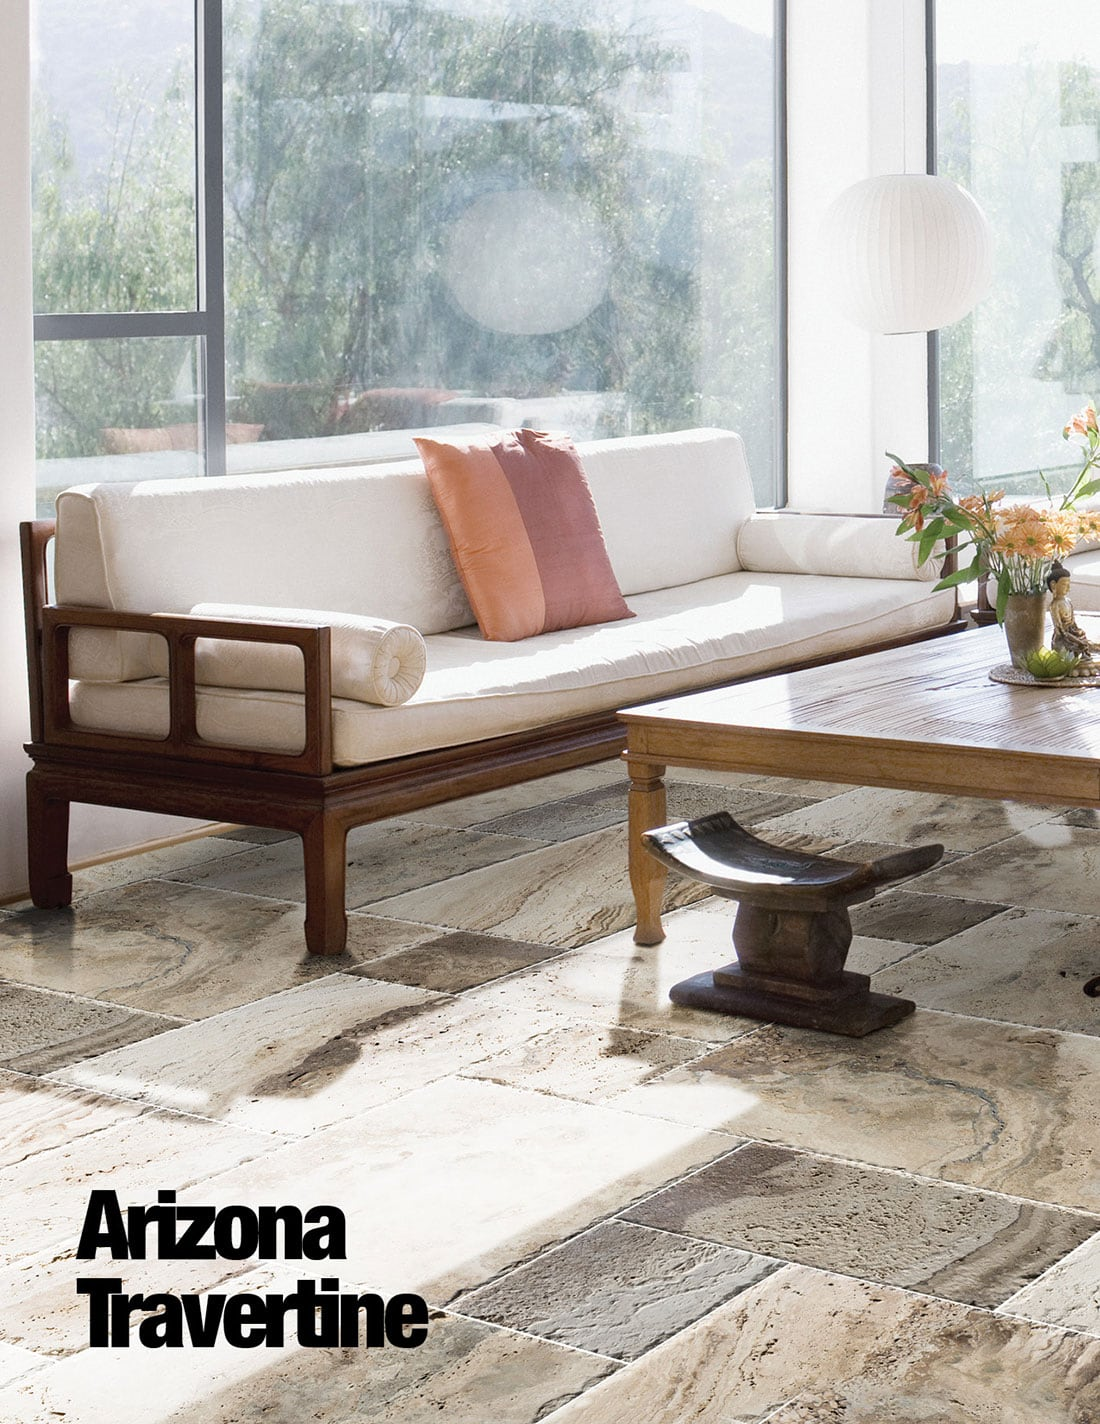 Arizona Travertine